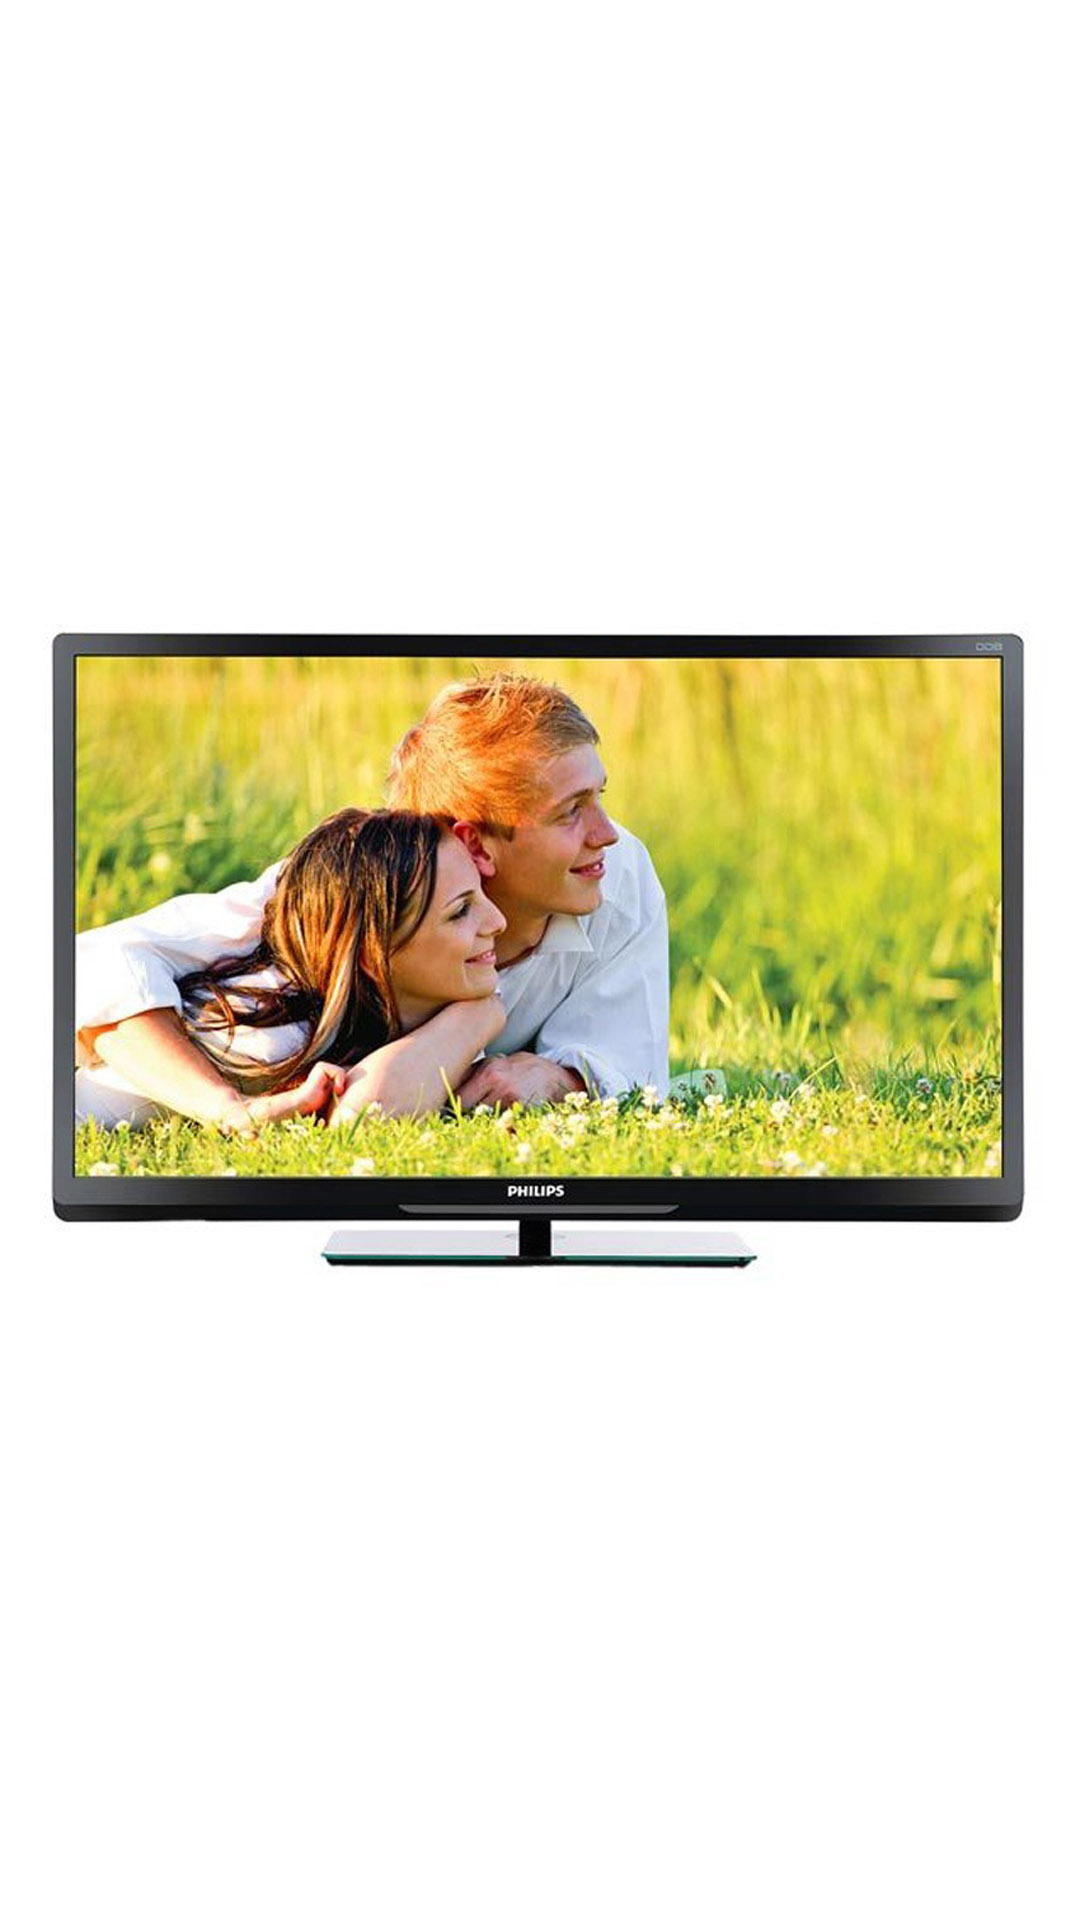 Philips 24PFL3938 58.42 cm (23) LED TV (HD Ready)